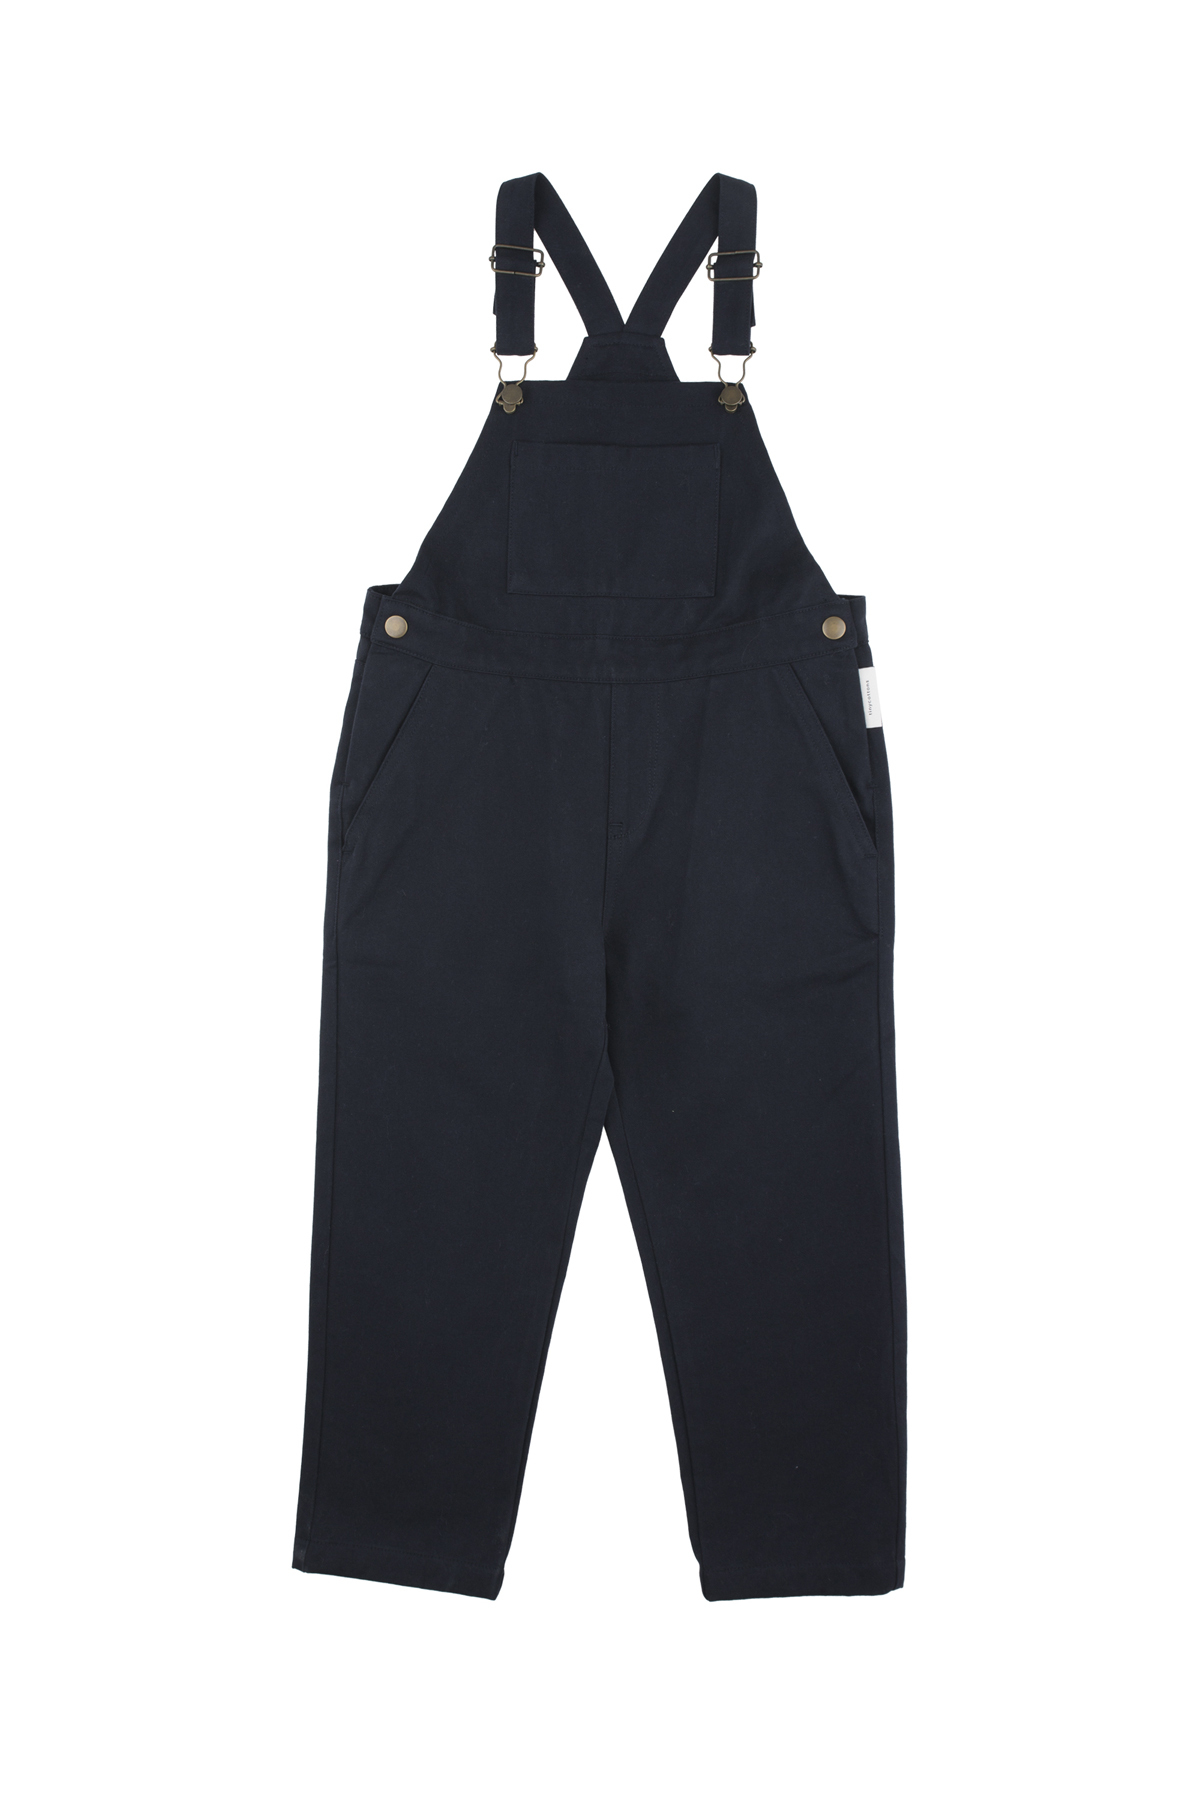 《tinycottons 2018AW》solid overall / navy